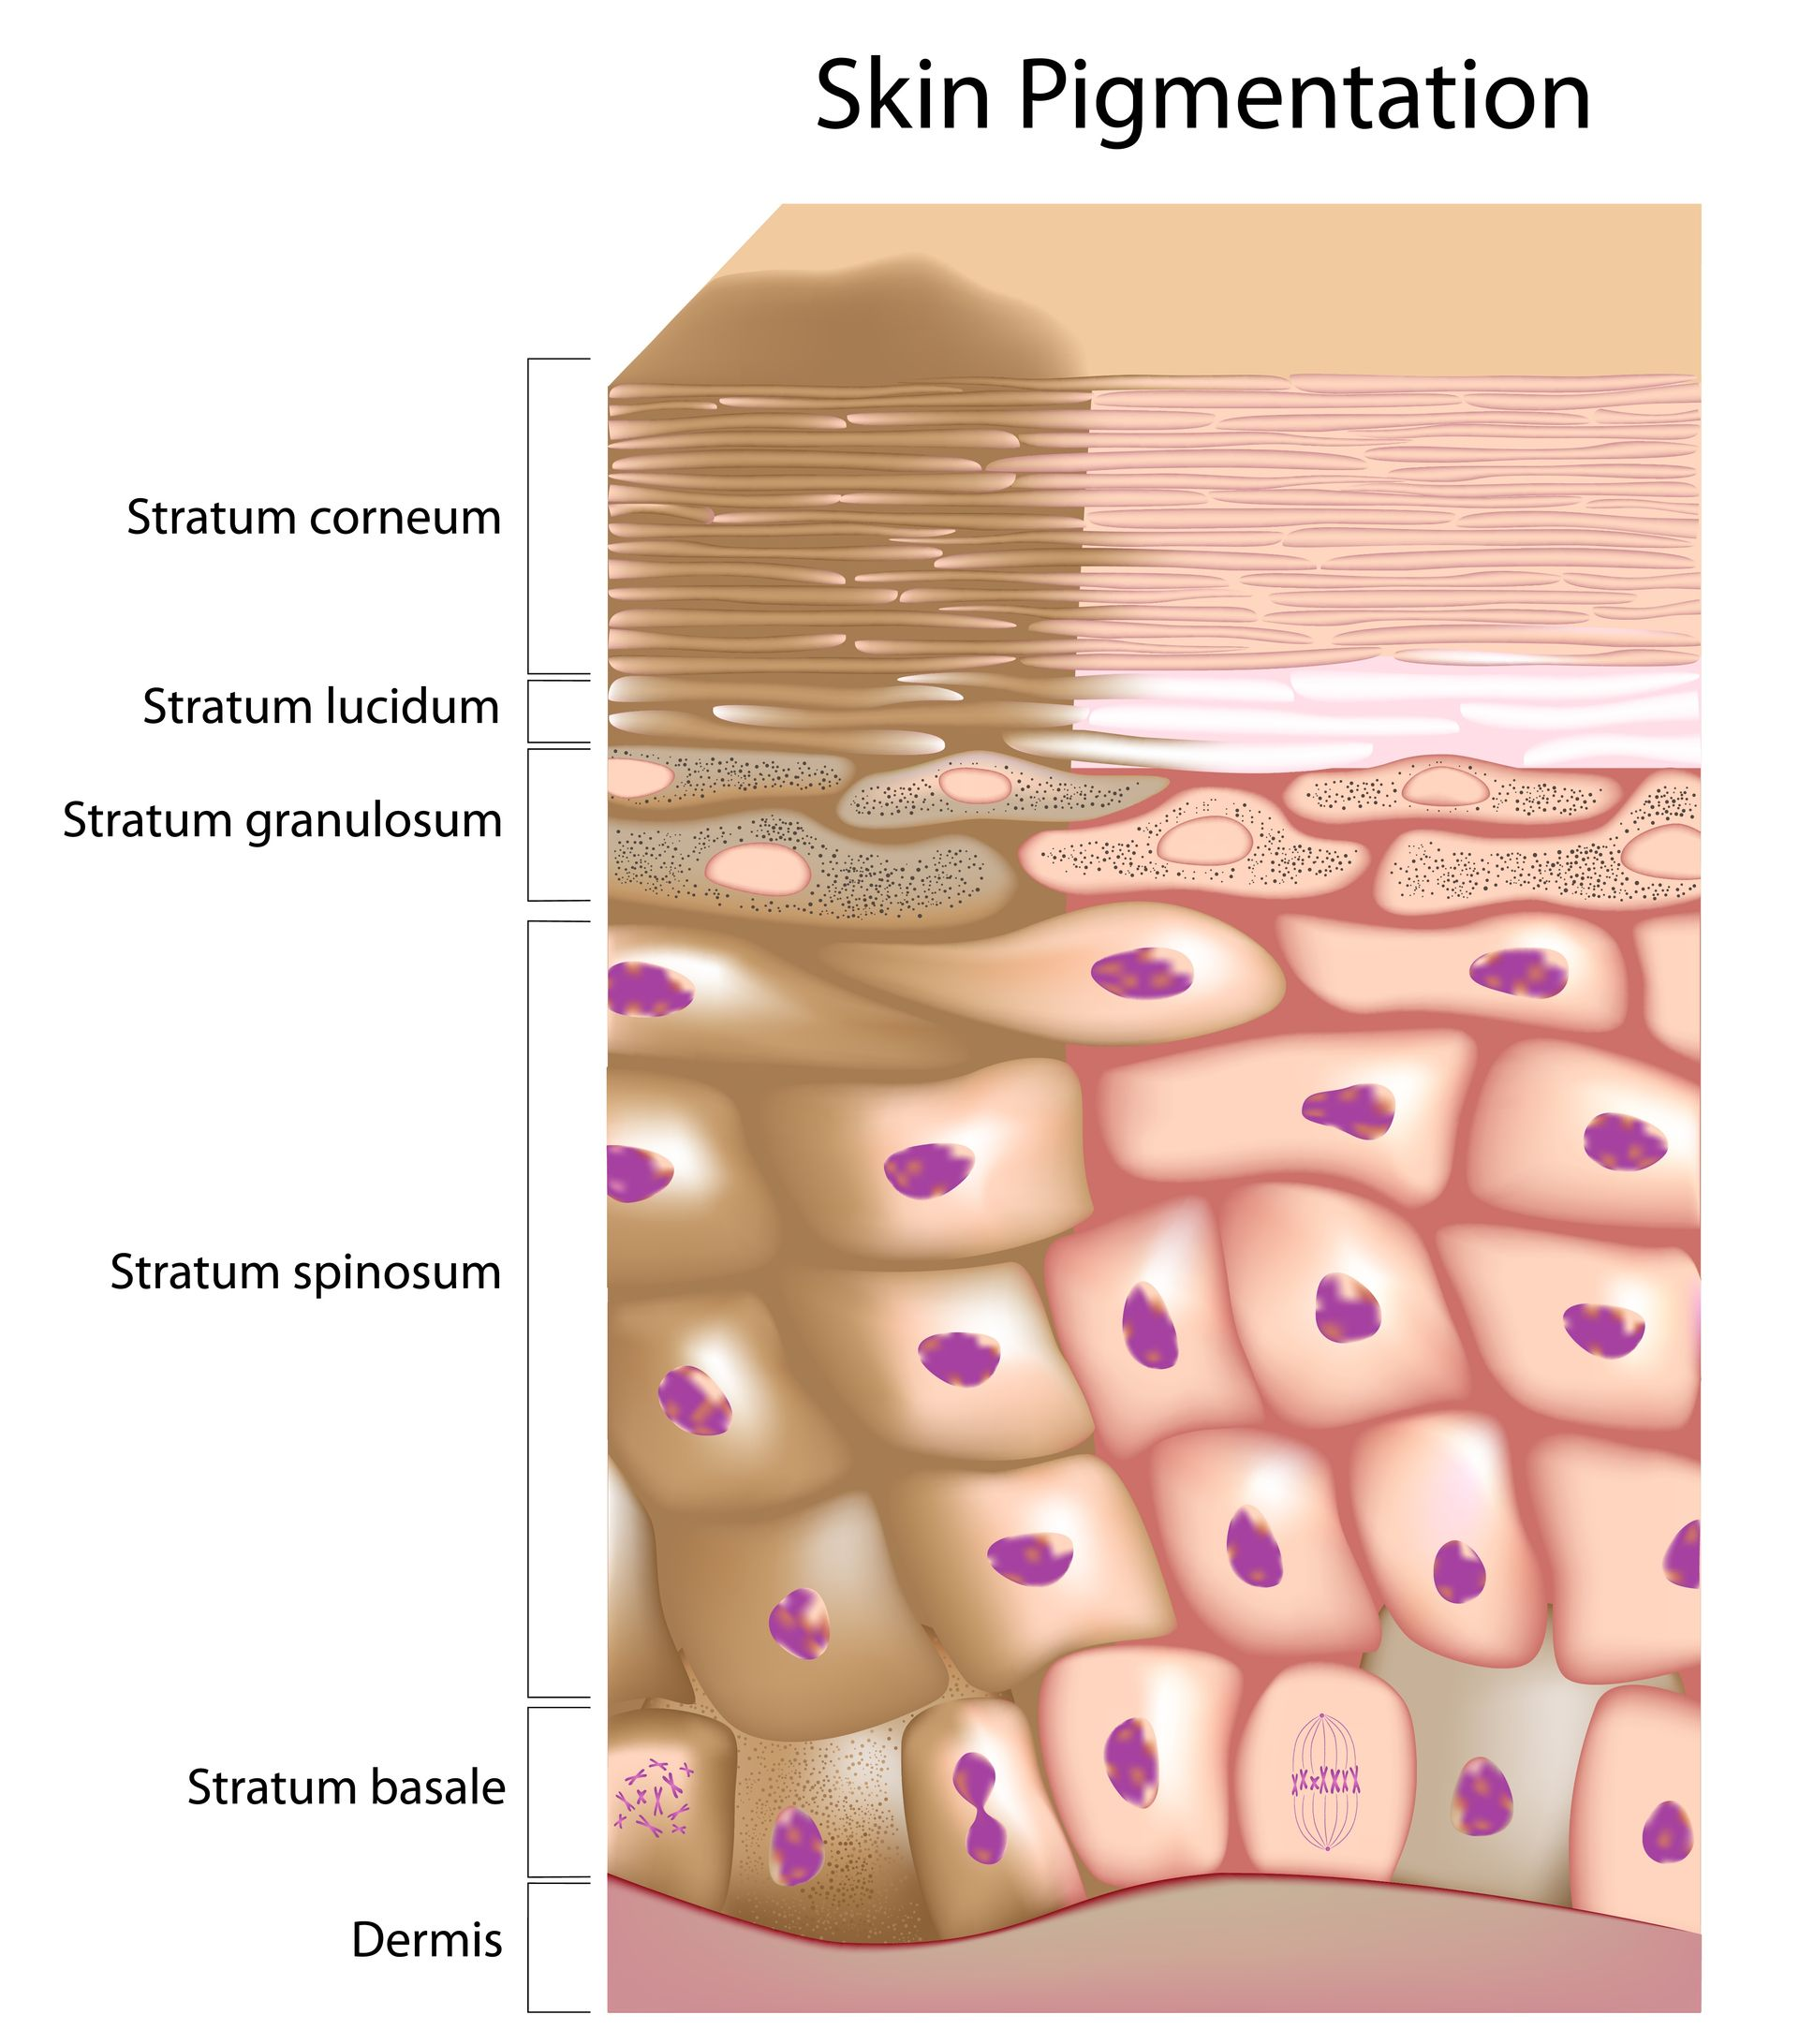 Pigmentation disorders of the skin